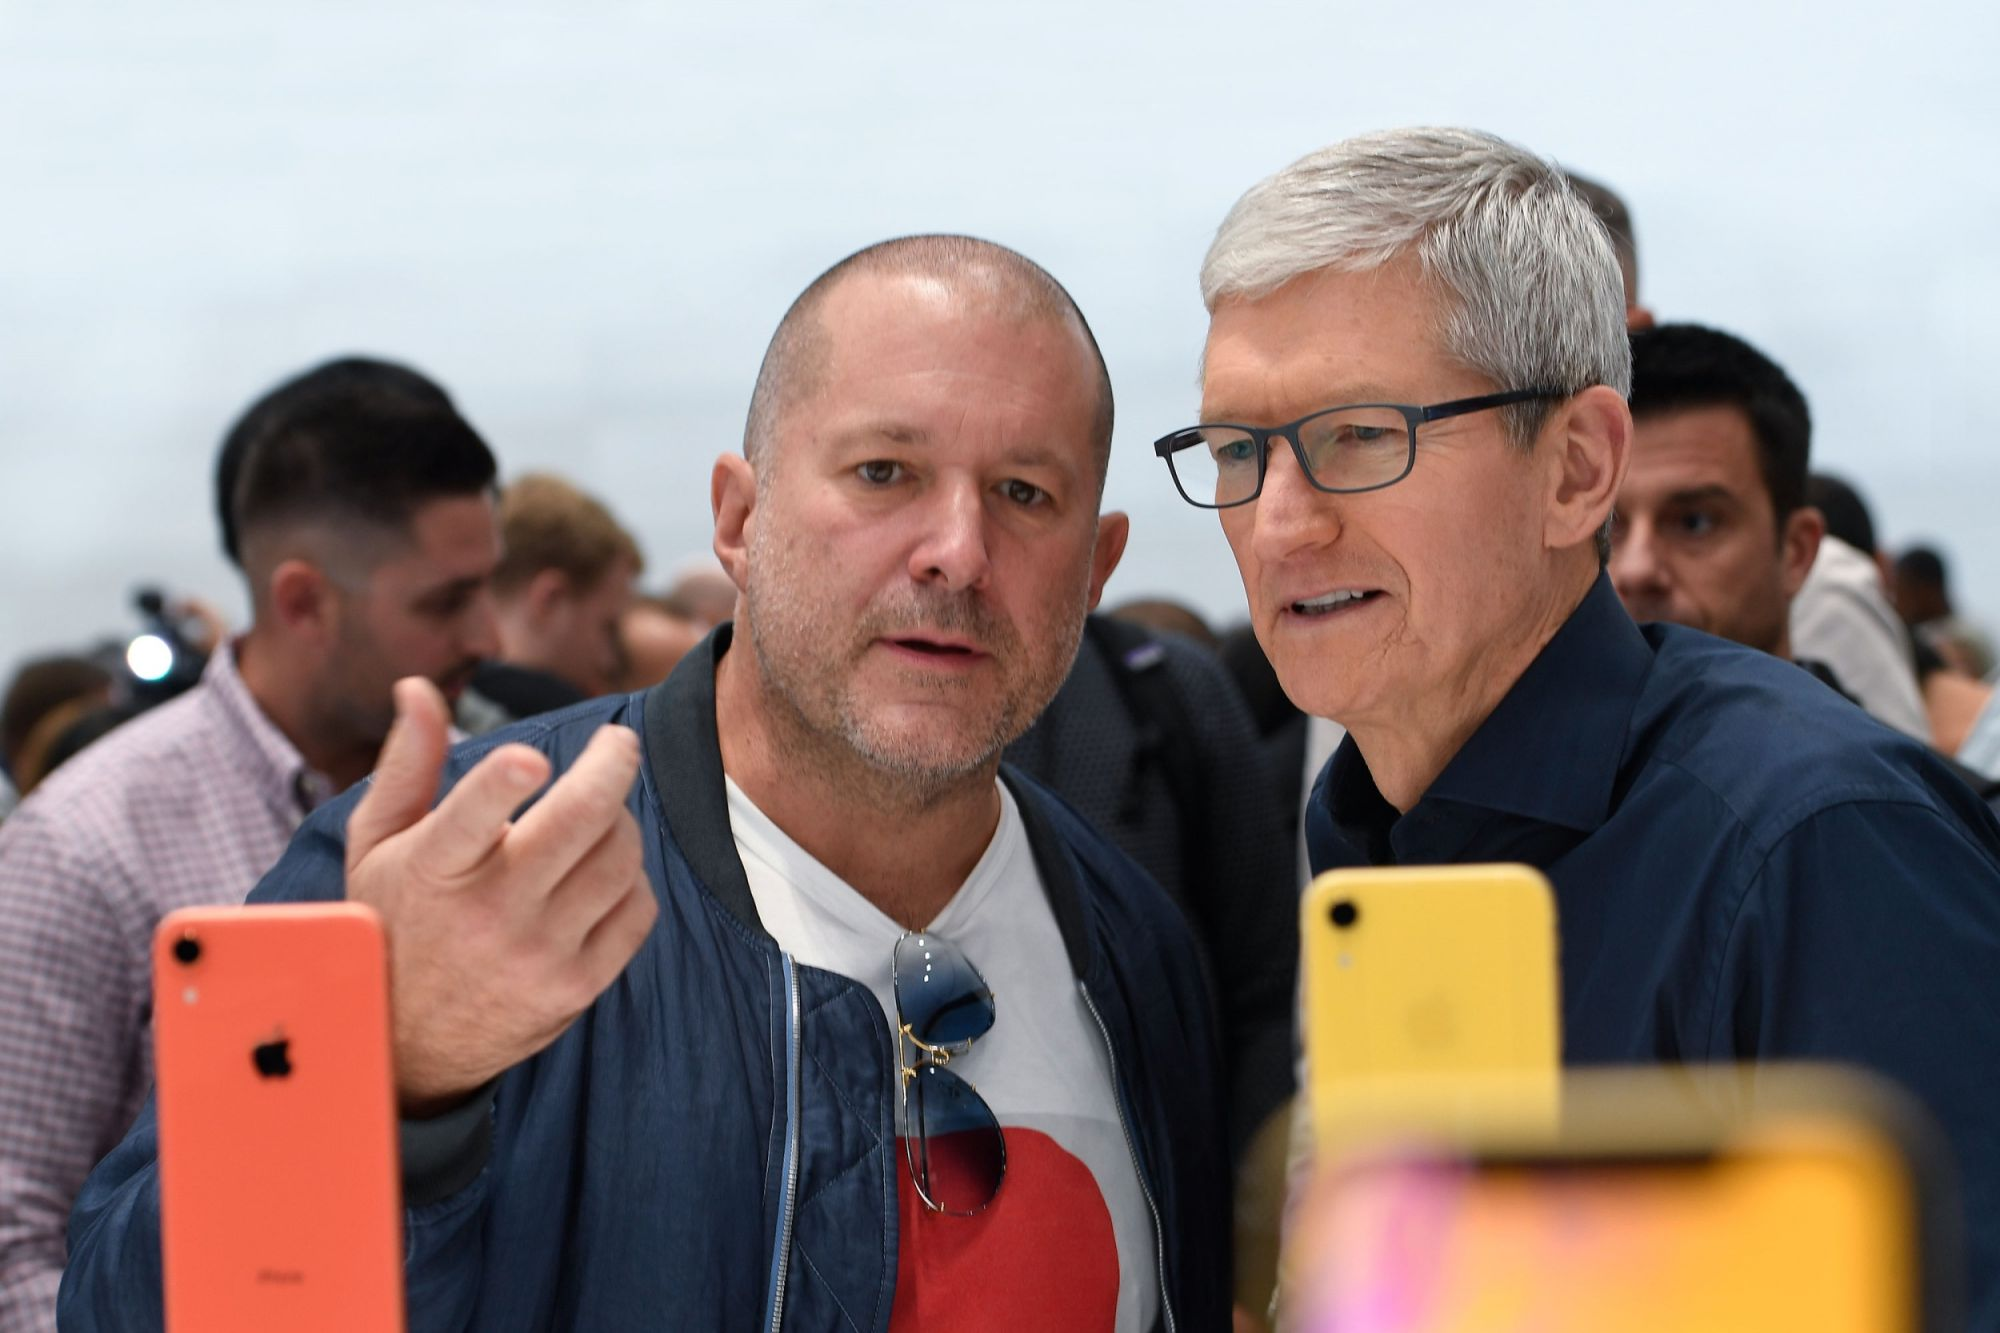 iPhone Designer Jony Ive to Leave Apple to Start His Own Firm